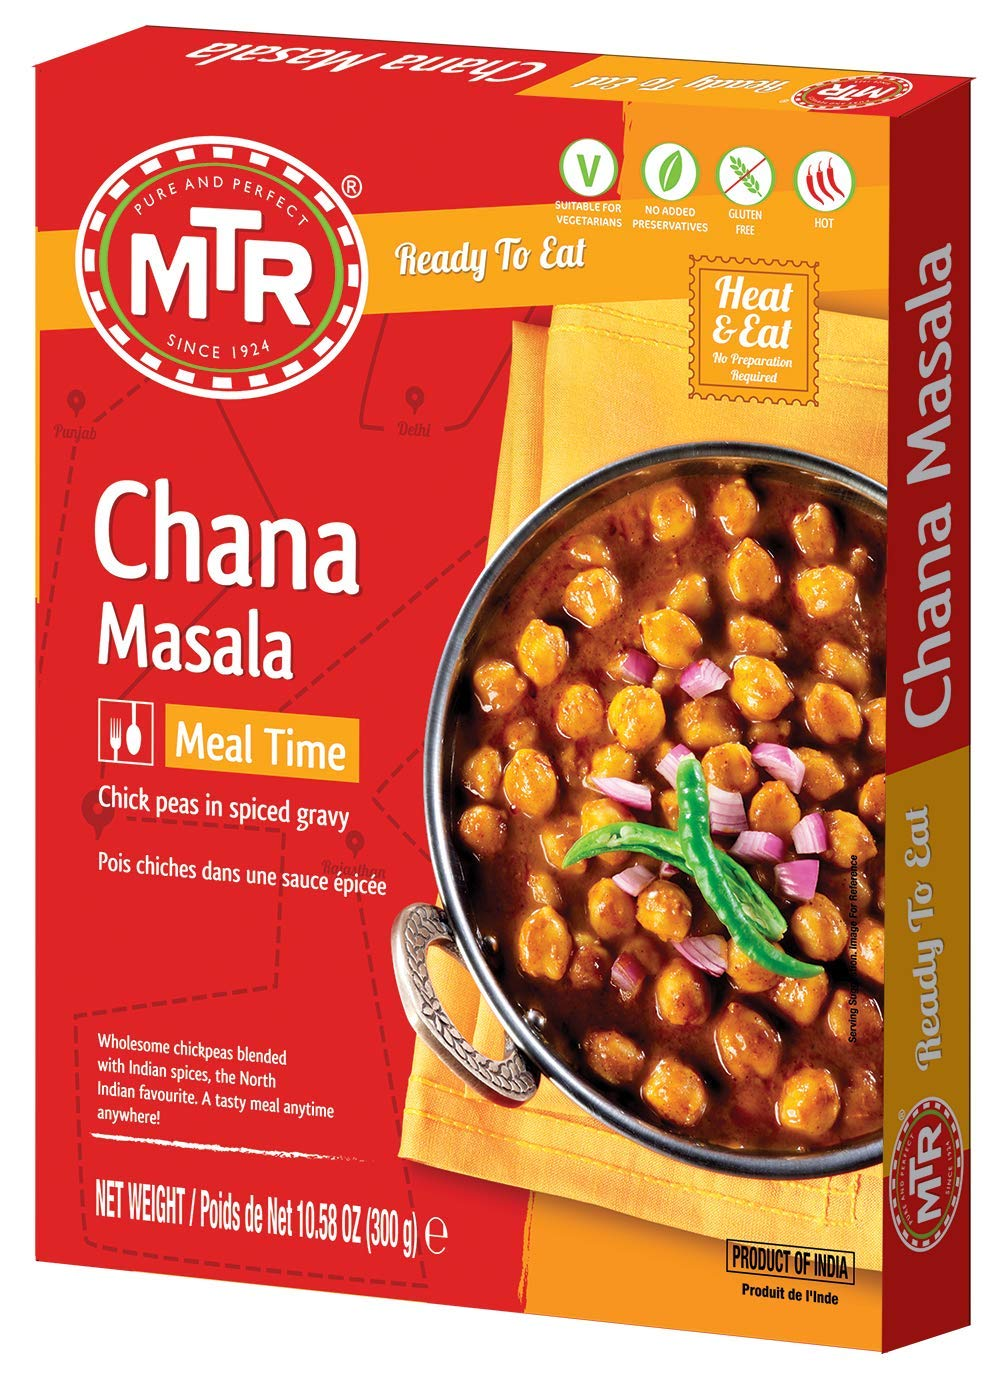 MTR Ready to Eat Chana Masala | Chickpeas in spiced gravy | Pack of 10 (10.58 Oz Each) |Authentic Indian Food | Hot Spicy |Just Heat and Eat | No Preparation | No additives | Gluten Free